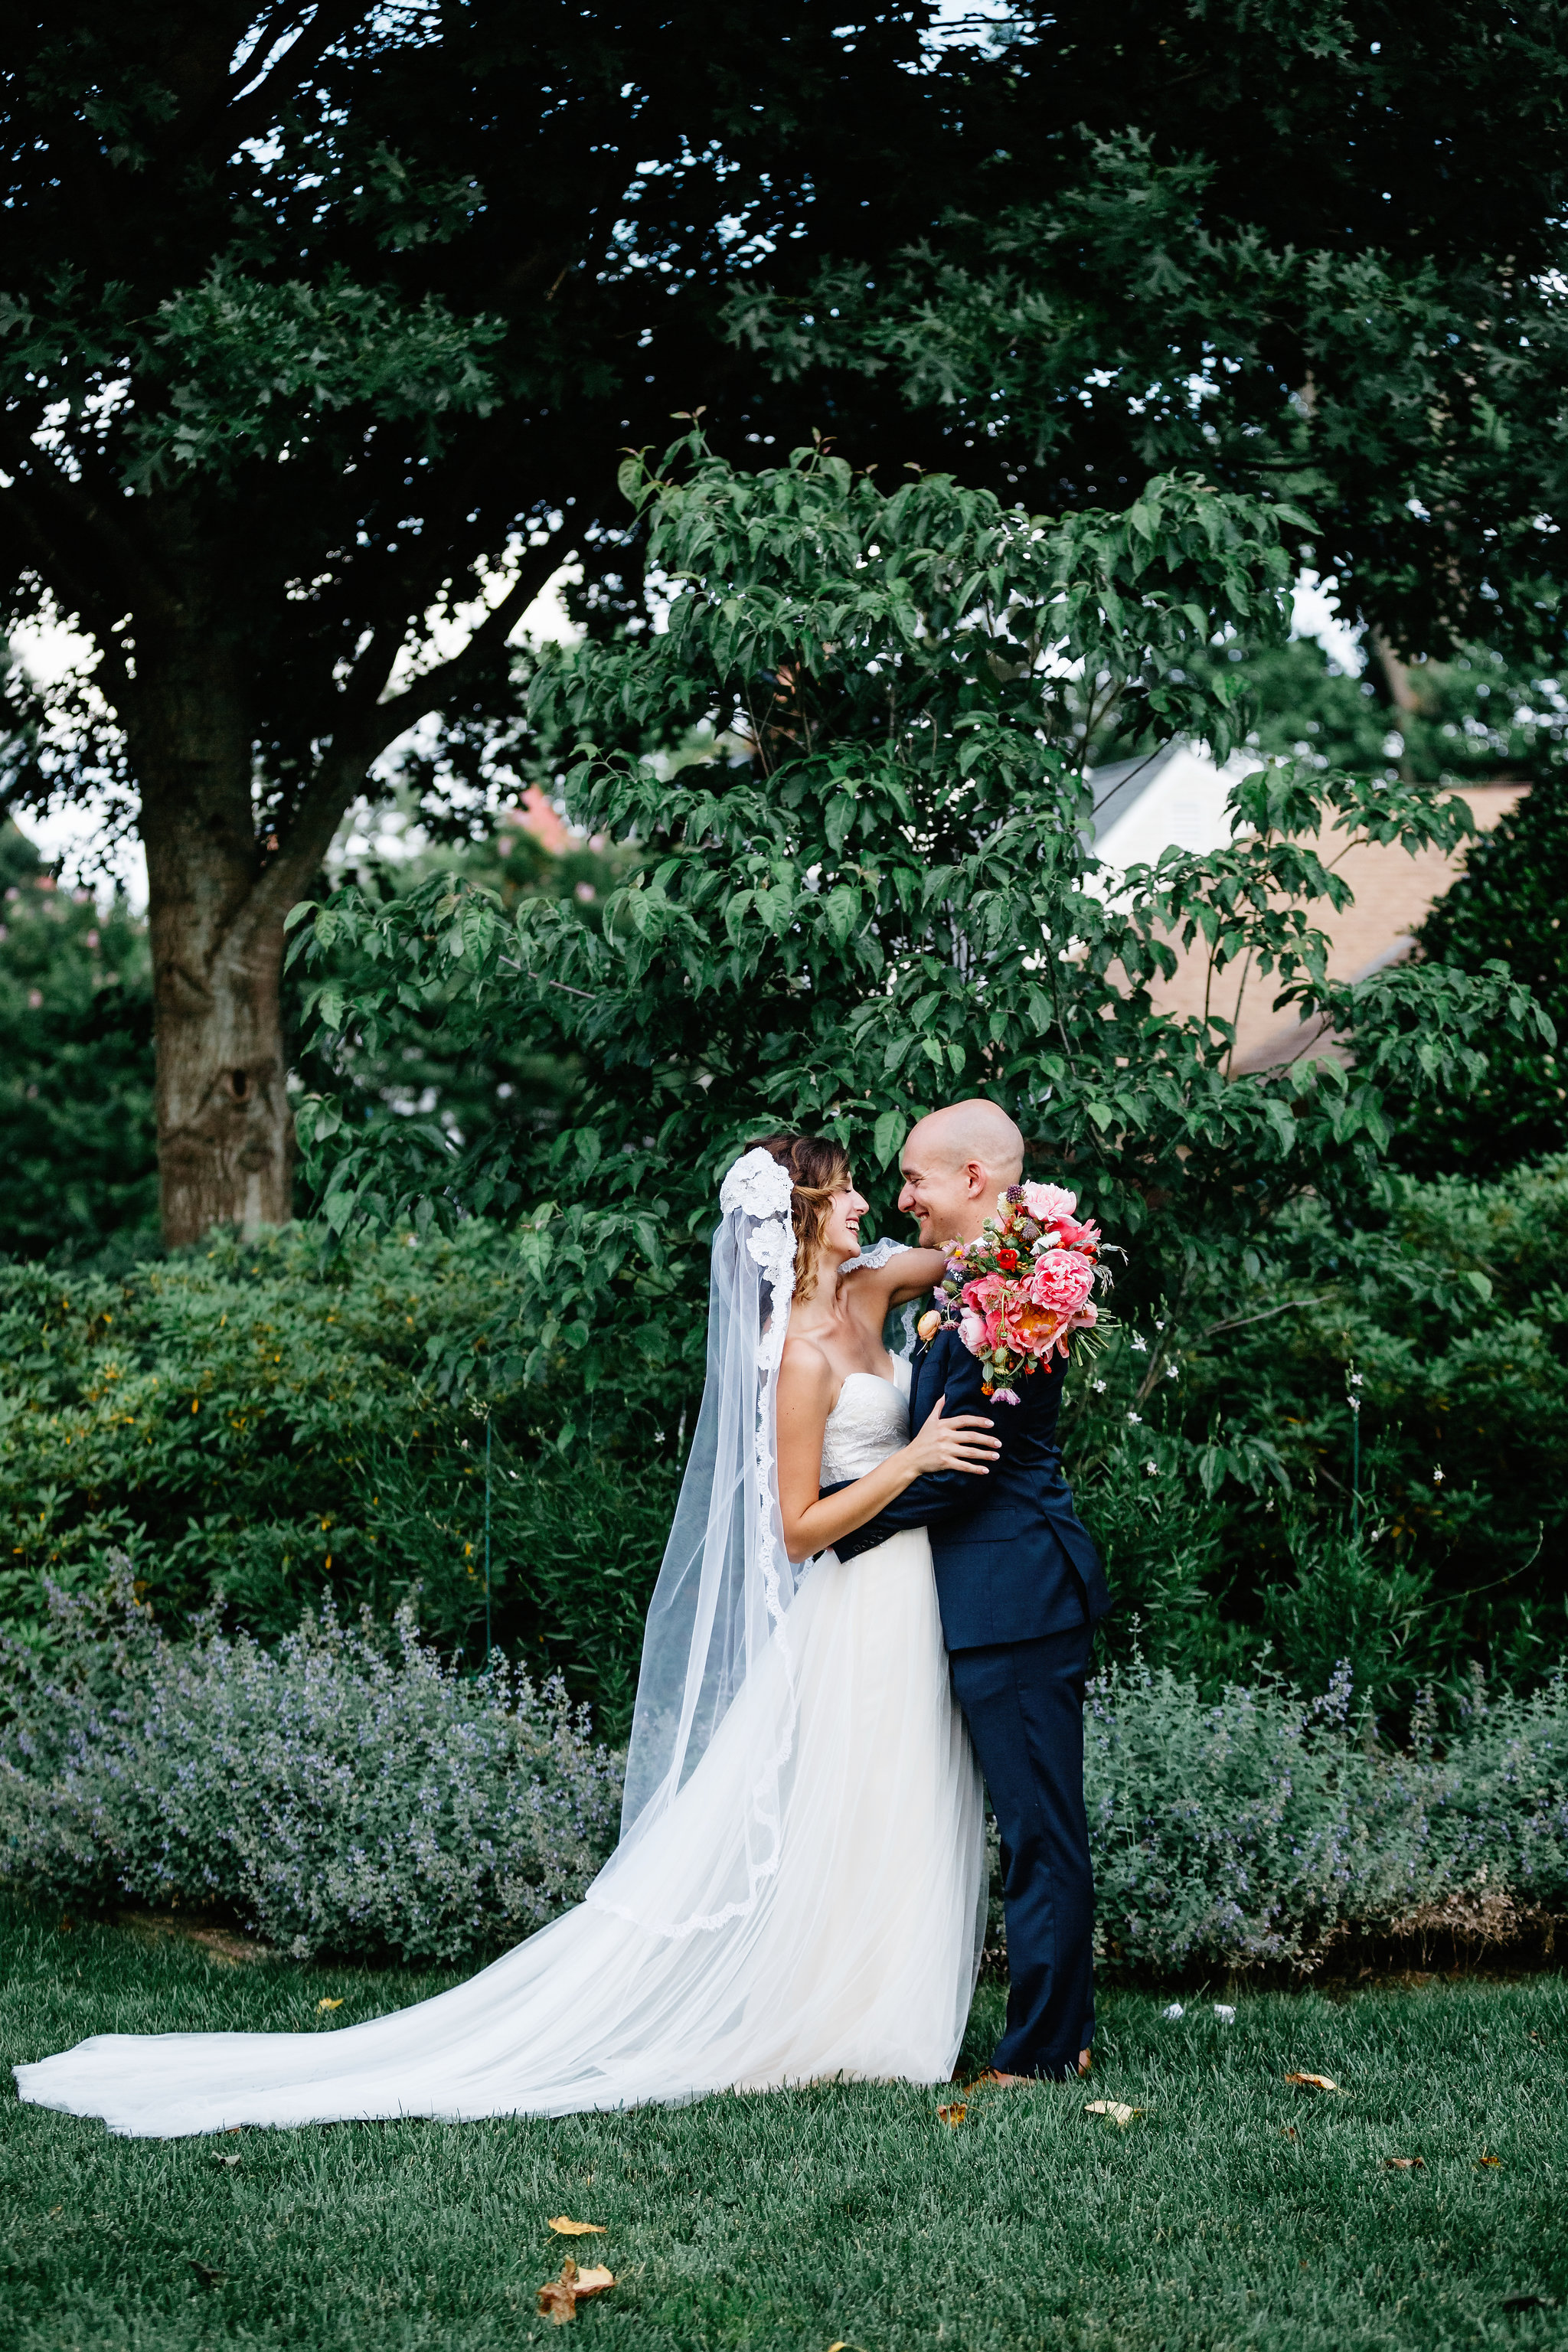 Maria&Dave2017-07-28at9.36.52AM3.jpg